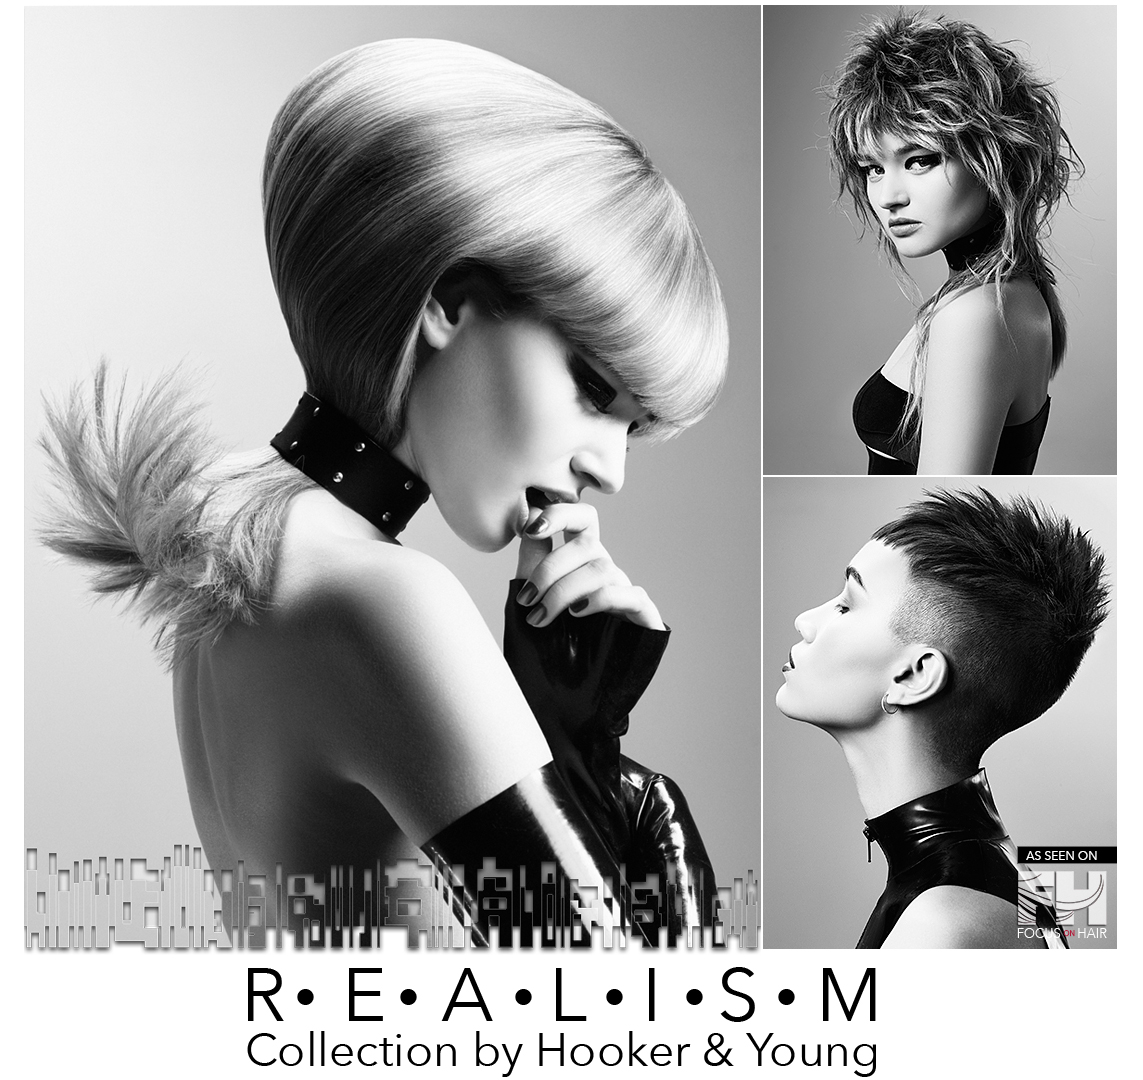 Realism Collection by Hooker&Young